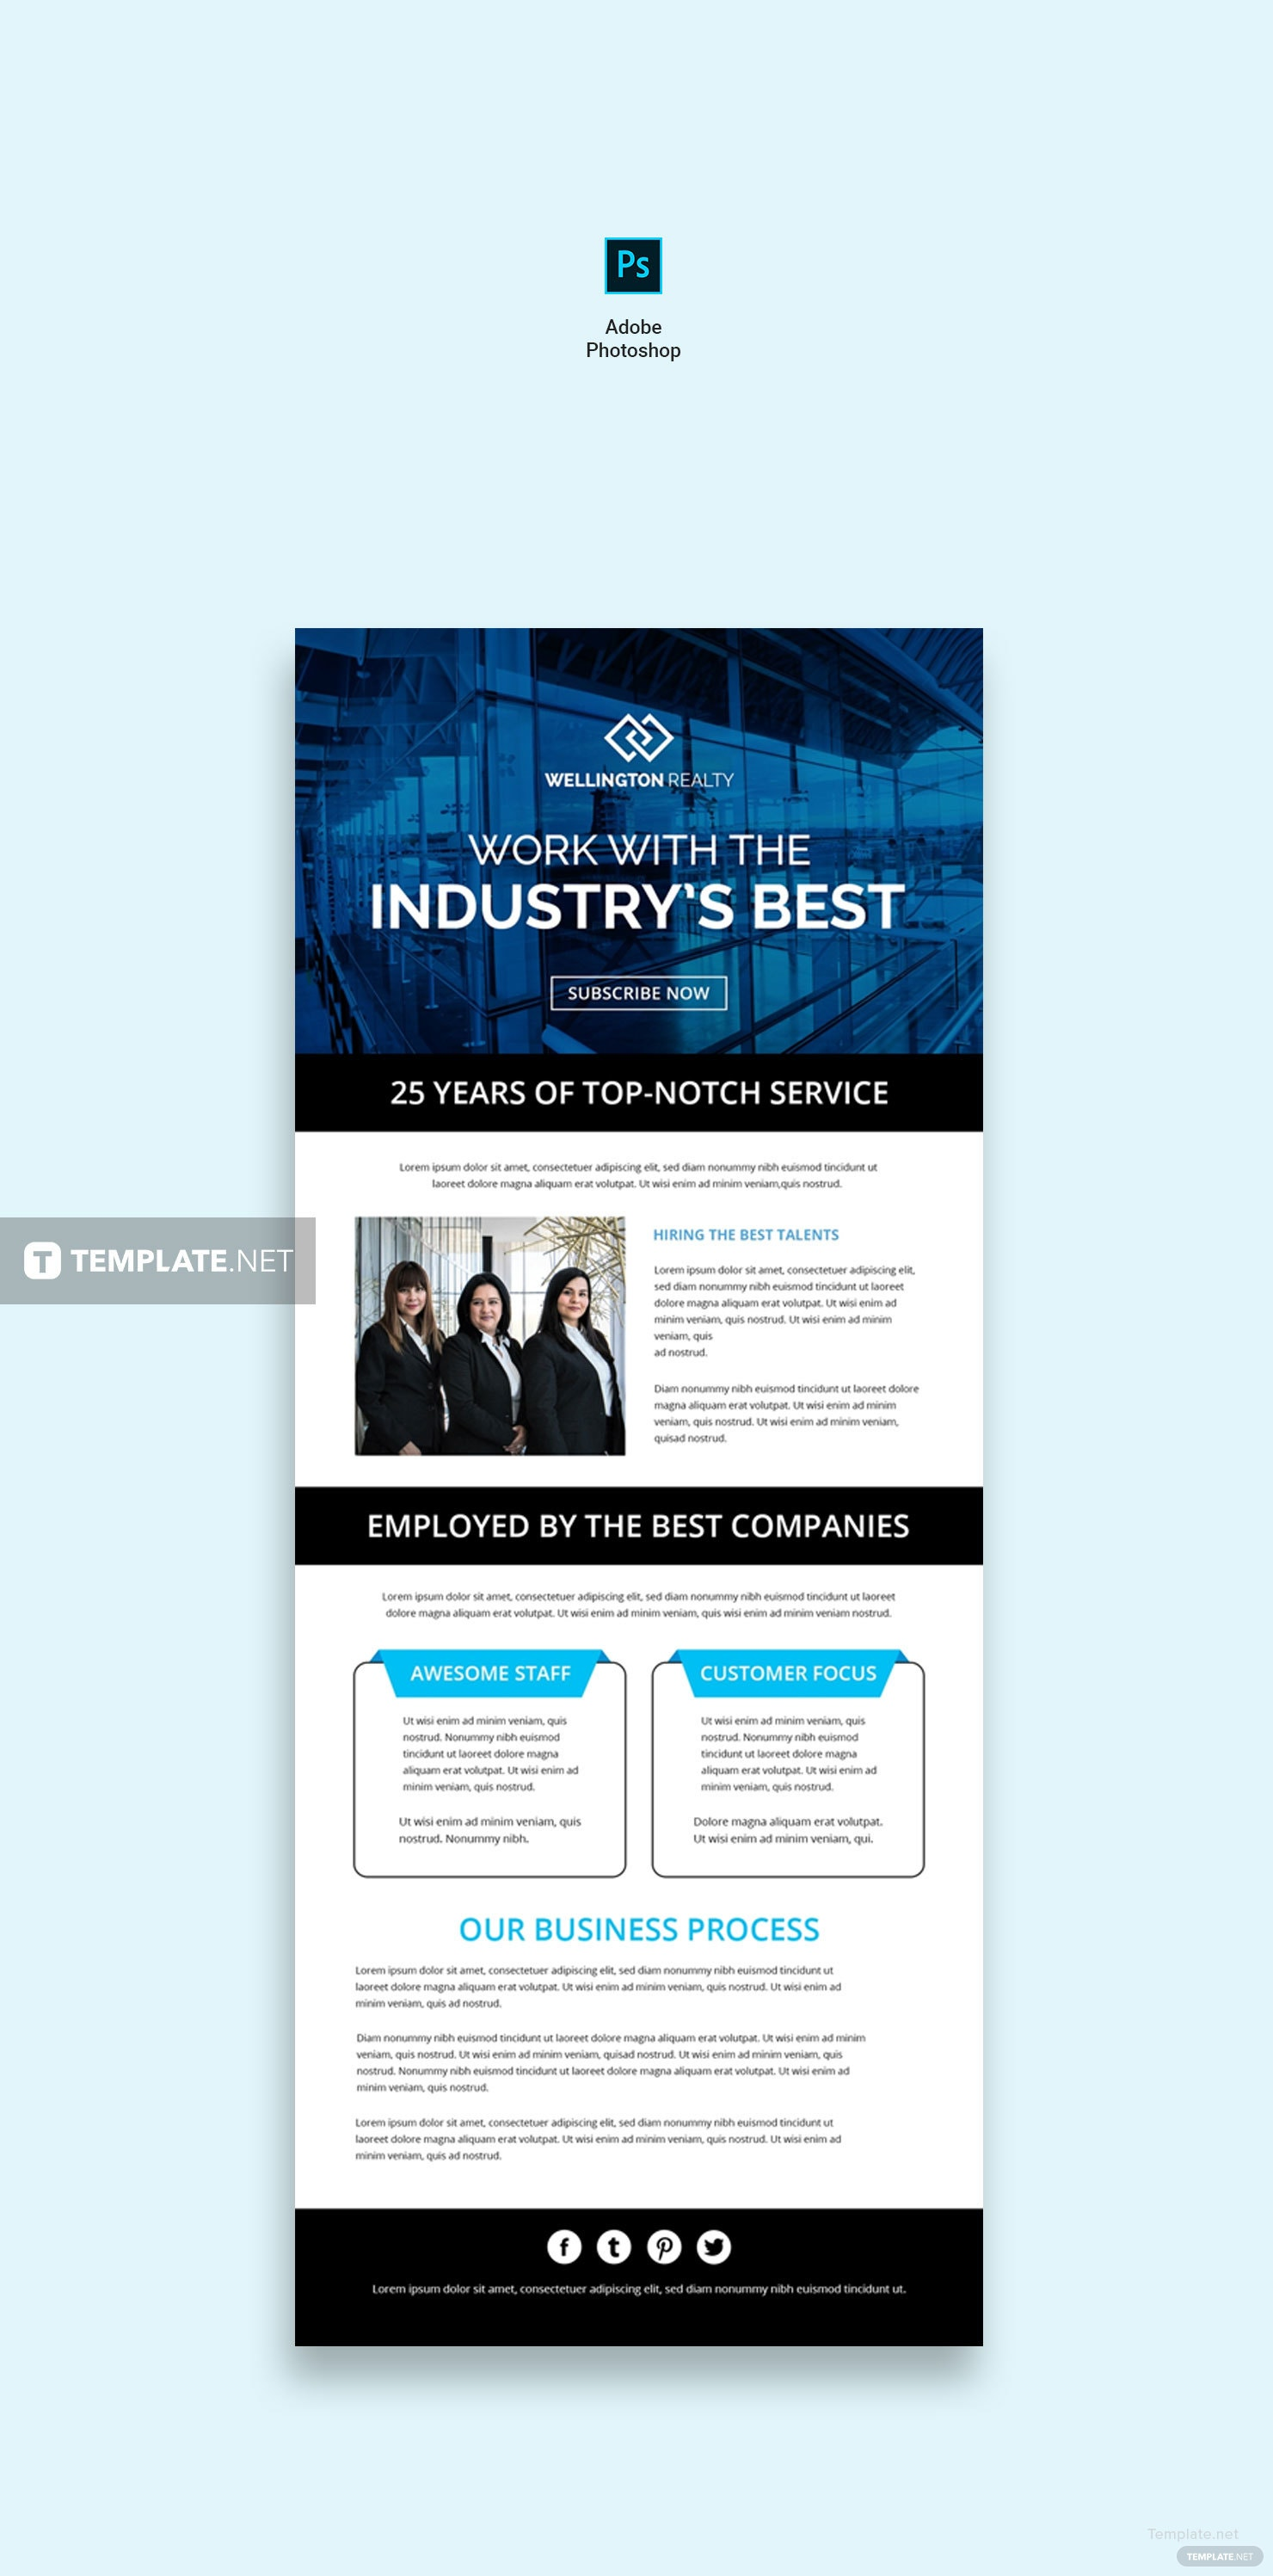 Free business email newsletter template in adobe photoshop business email newsletter template business email newsletter template cheaphphosting Image collections